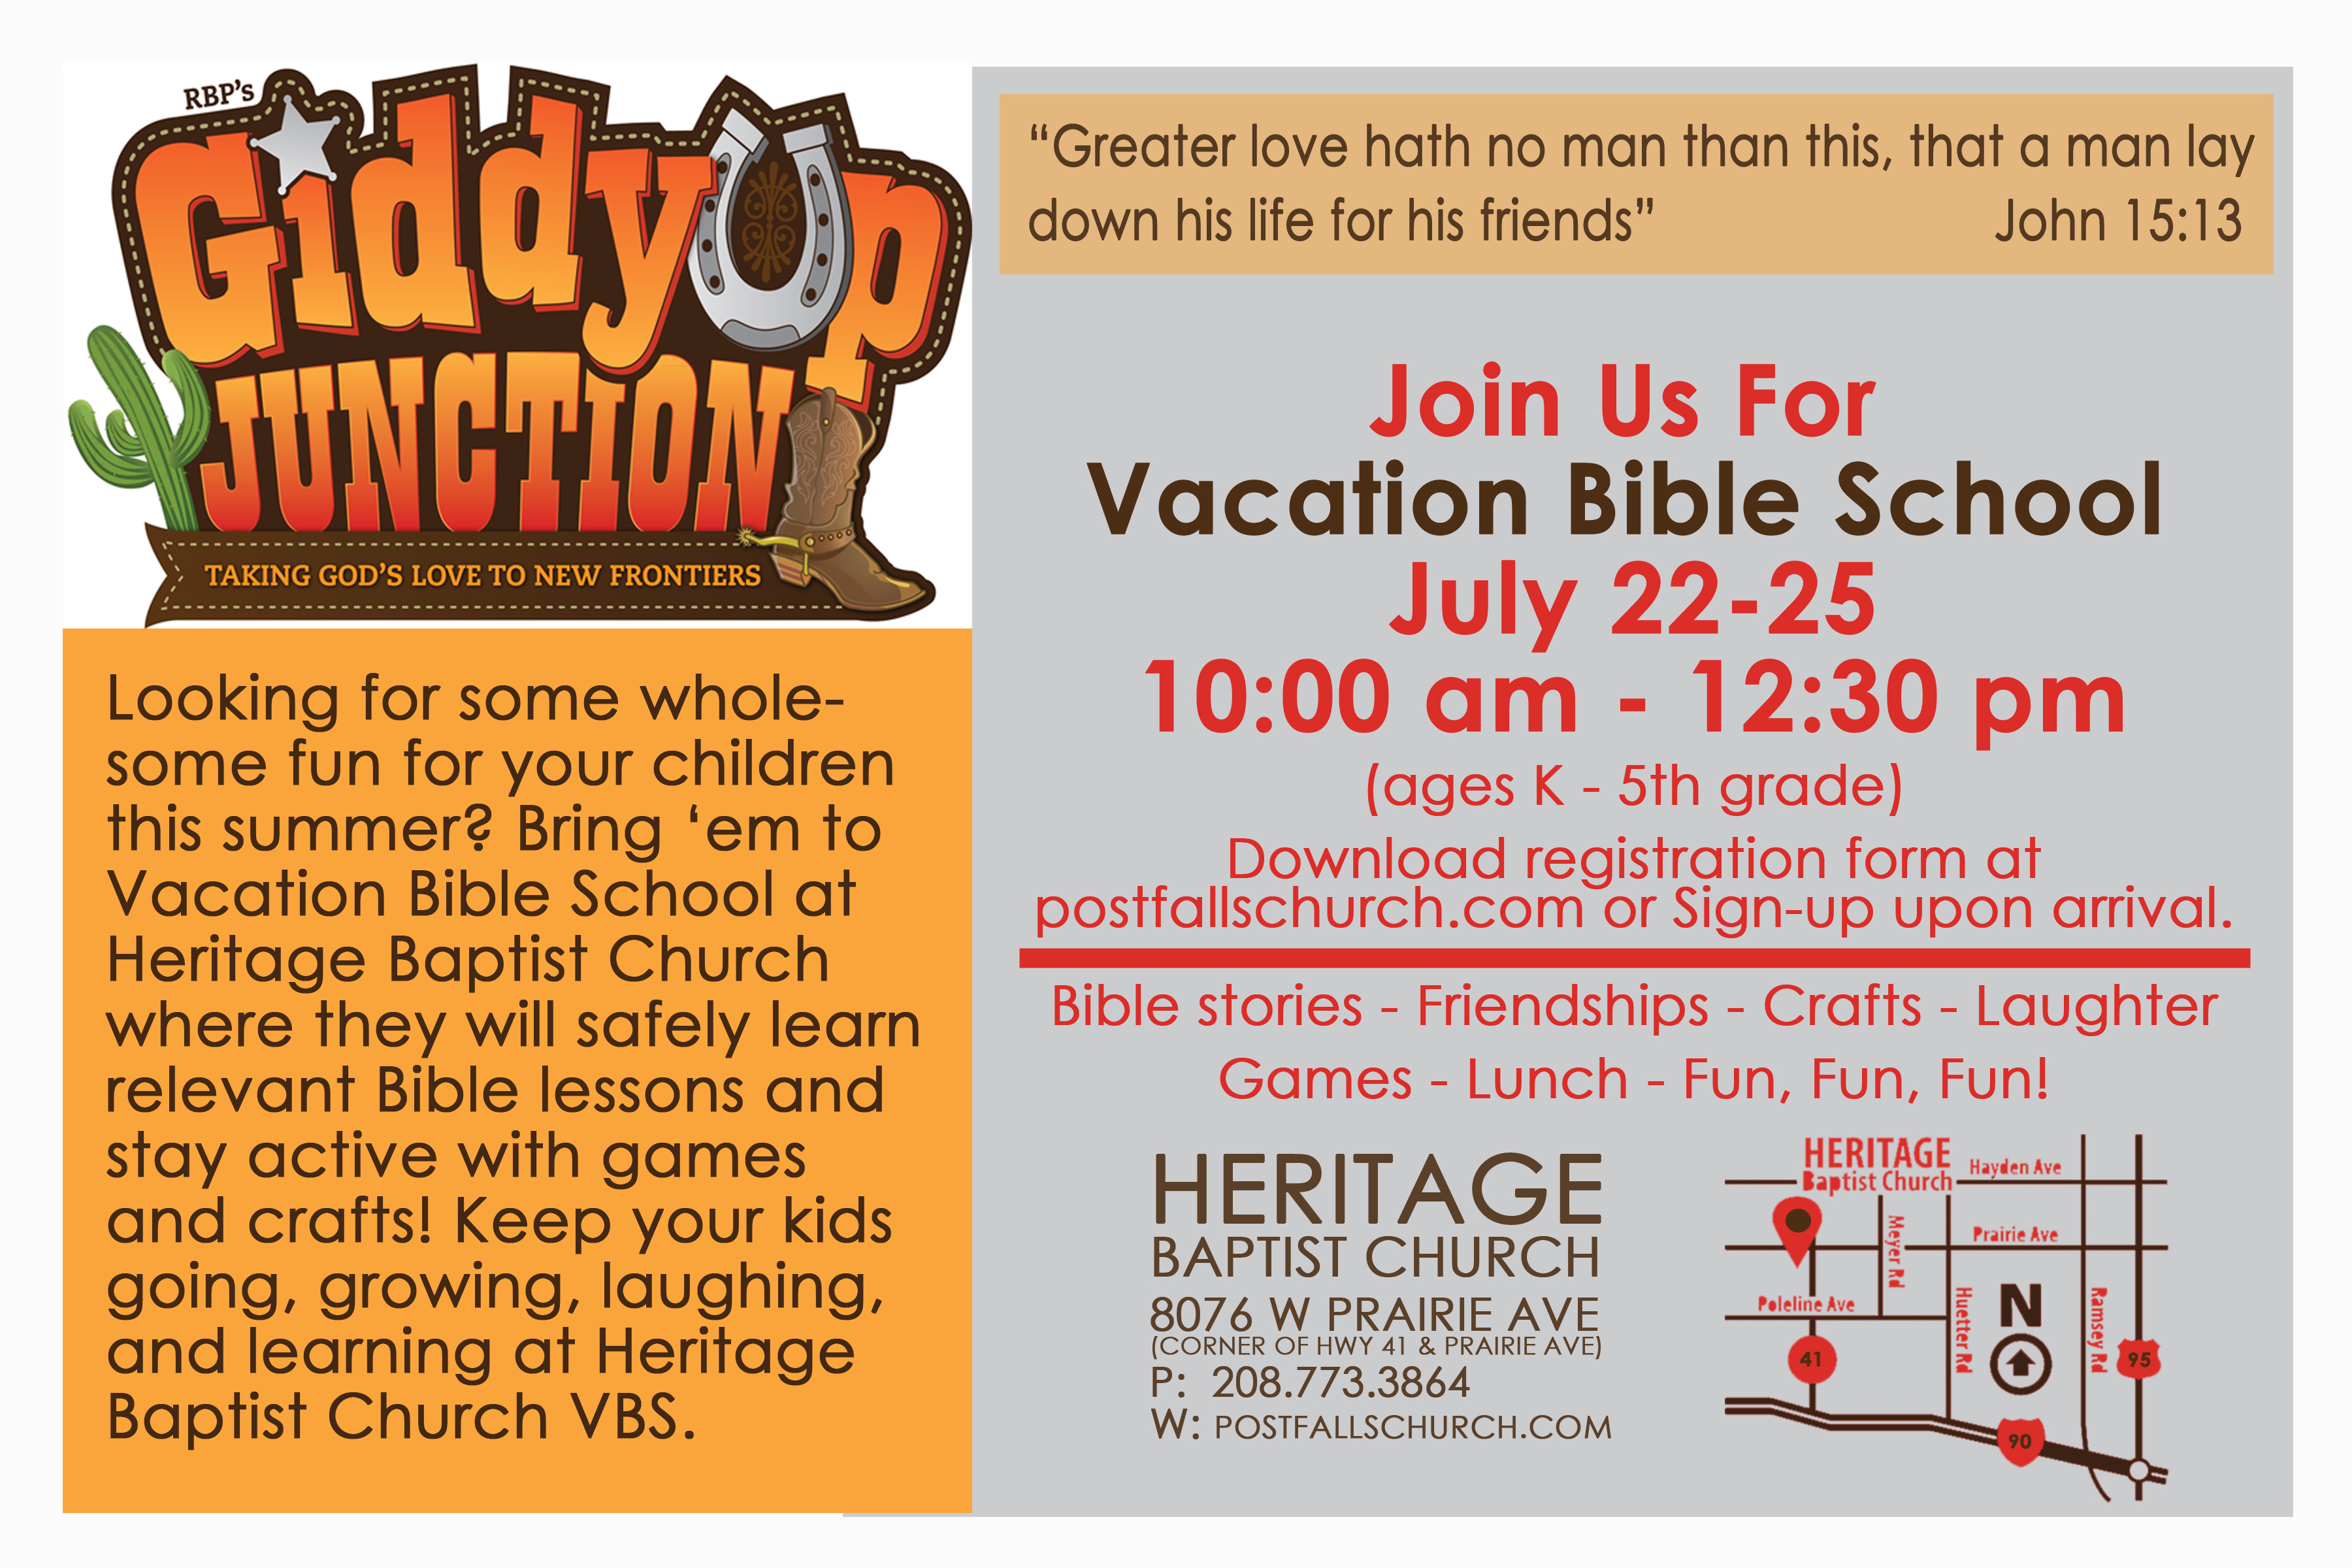 Vacation Bible School – Heritage Baptist Church